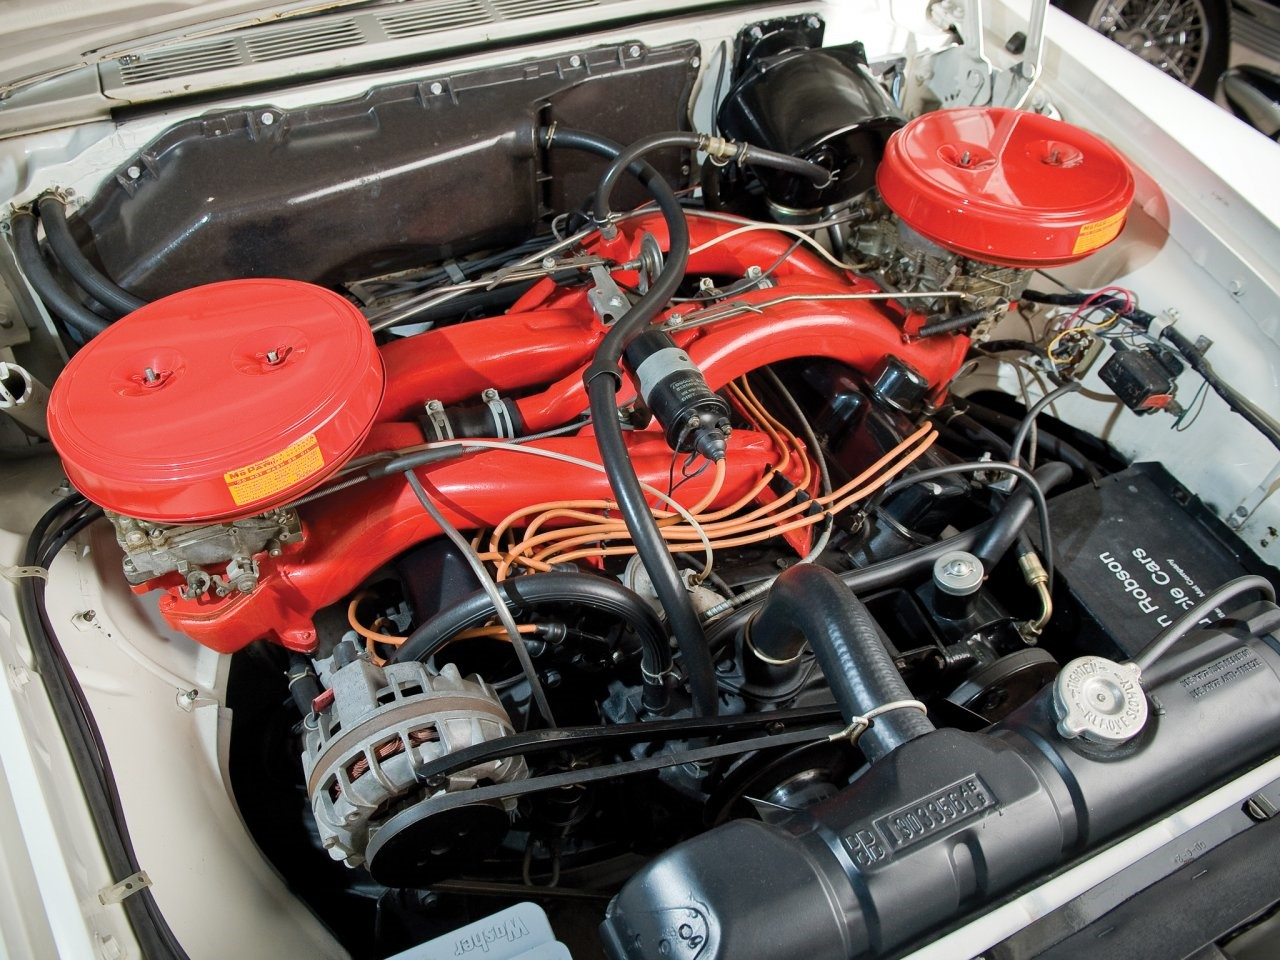 6.8 litre Wedge-head V8 1